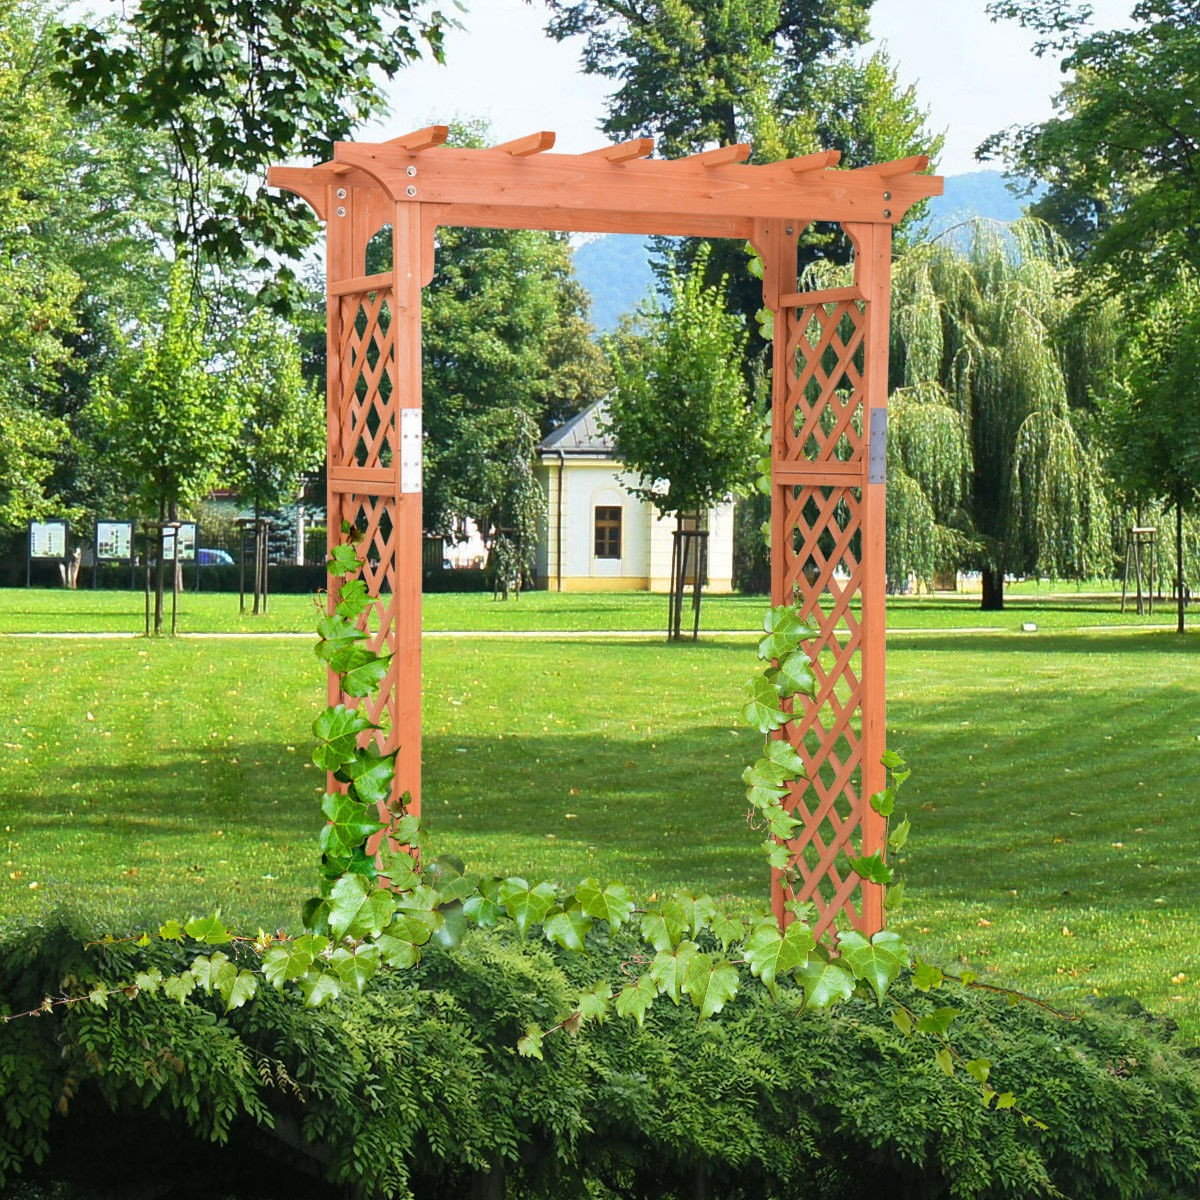 7 Ft Garden Yard Outdoor Wooden High Rose Arbor Arch Plant